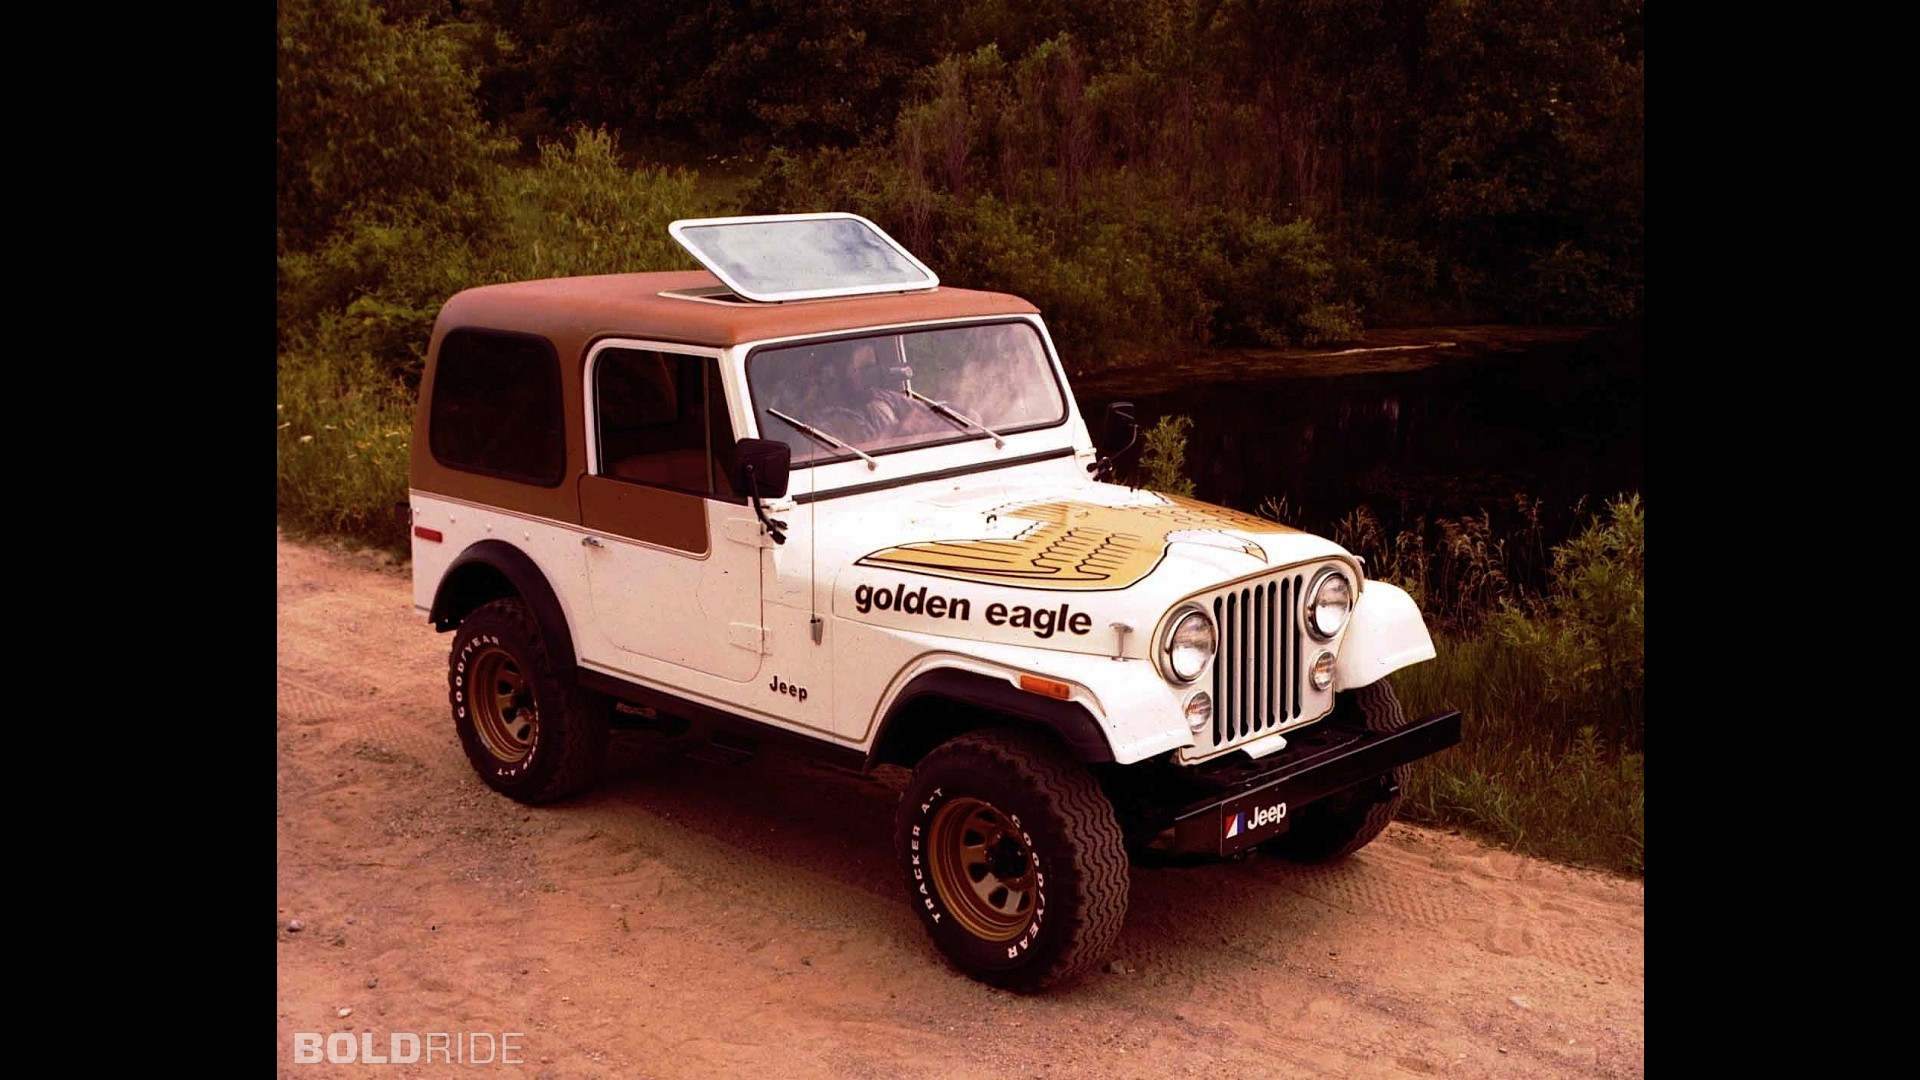 Jeep Cj 7 Golden Eagle